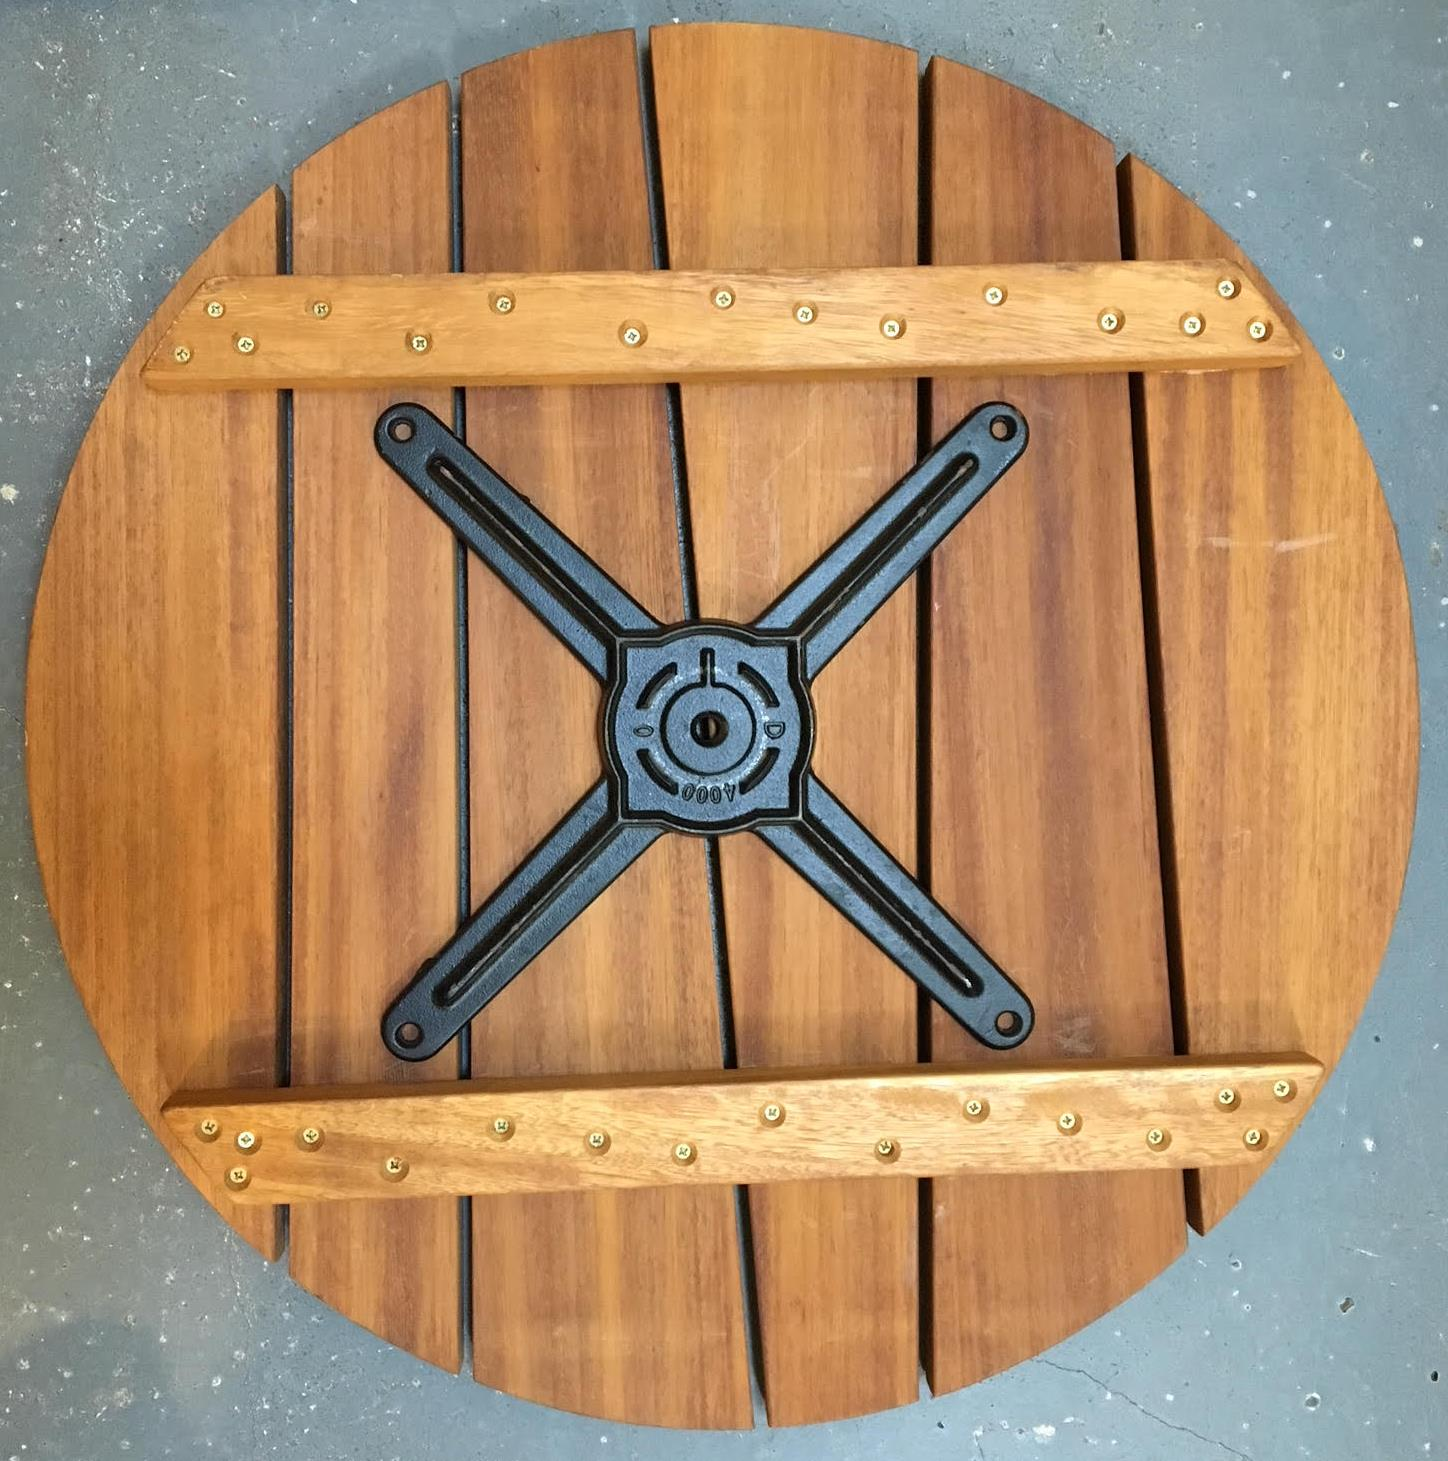 fixing-spider-to-table-with-battens